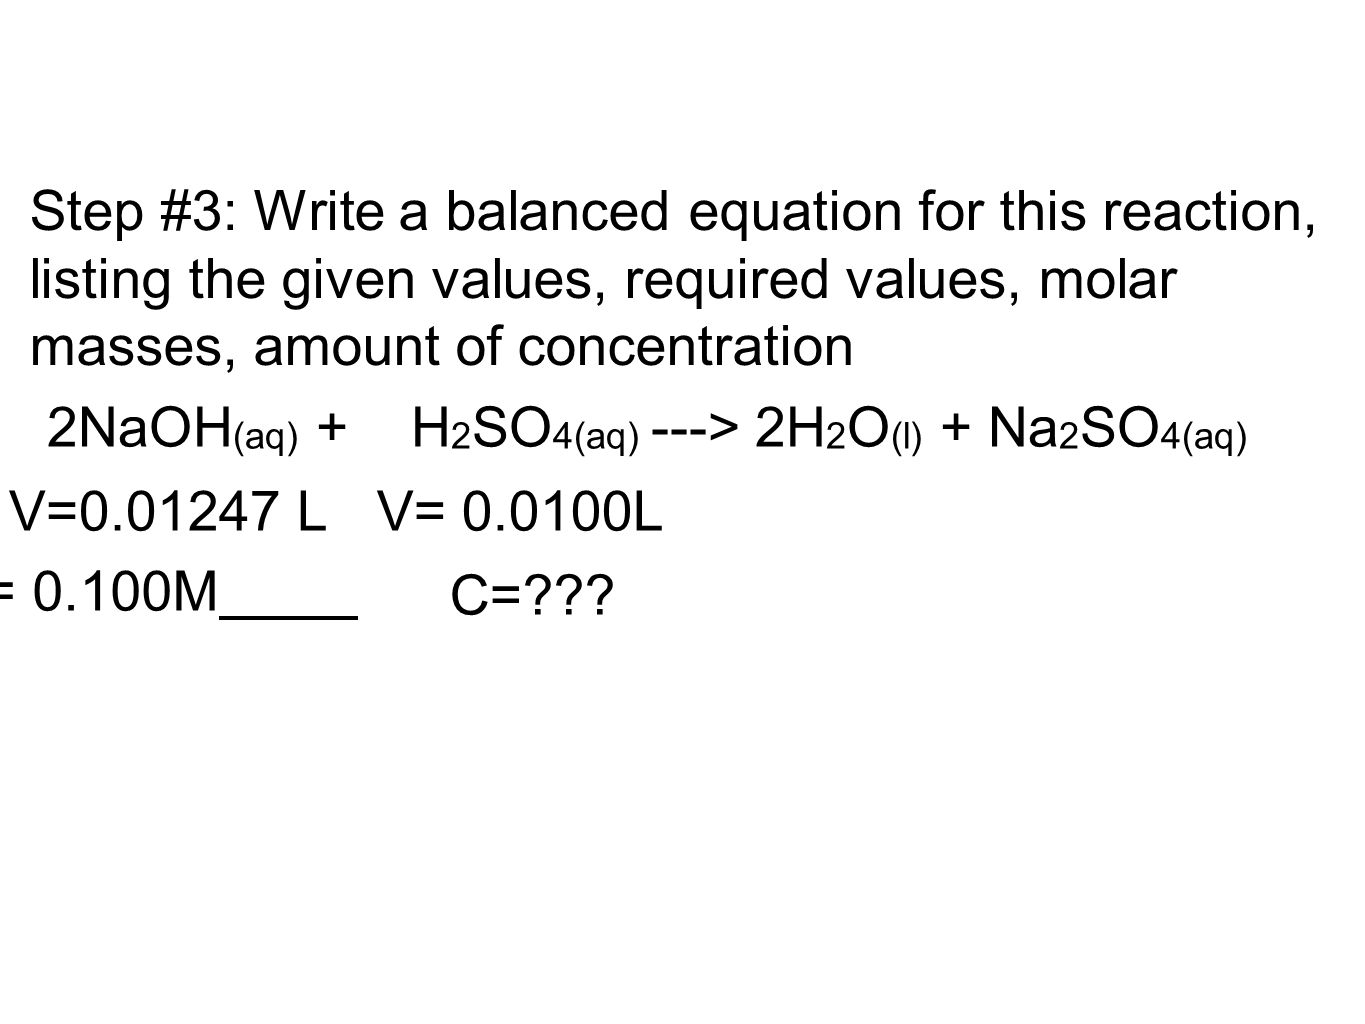 Step #3: Write A Balanced Equation For This Reaction, Listing The Given  Values